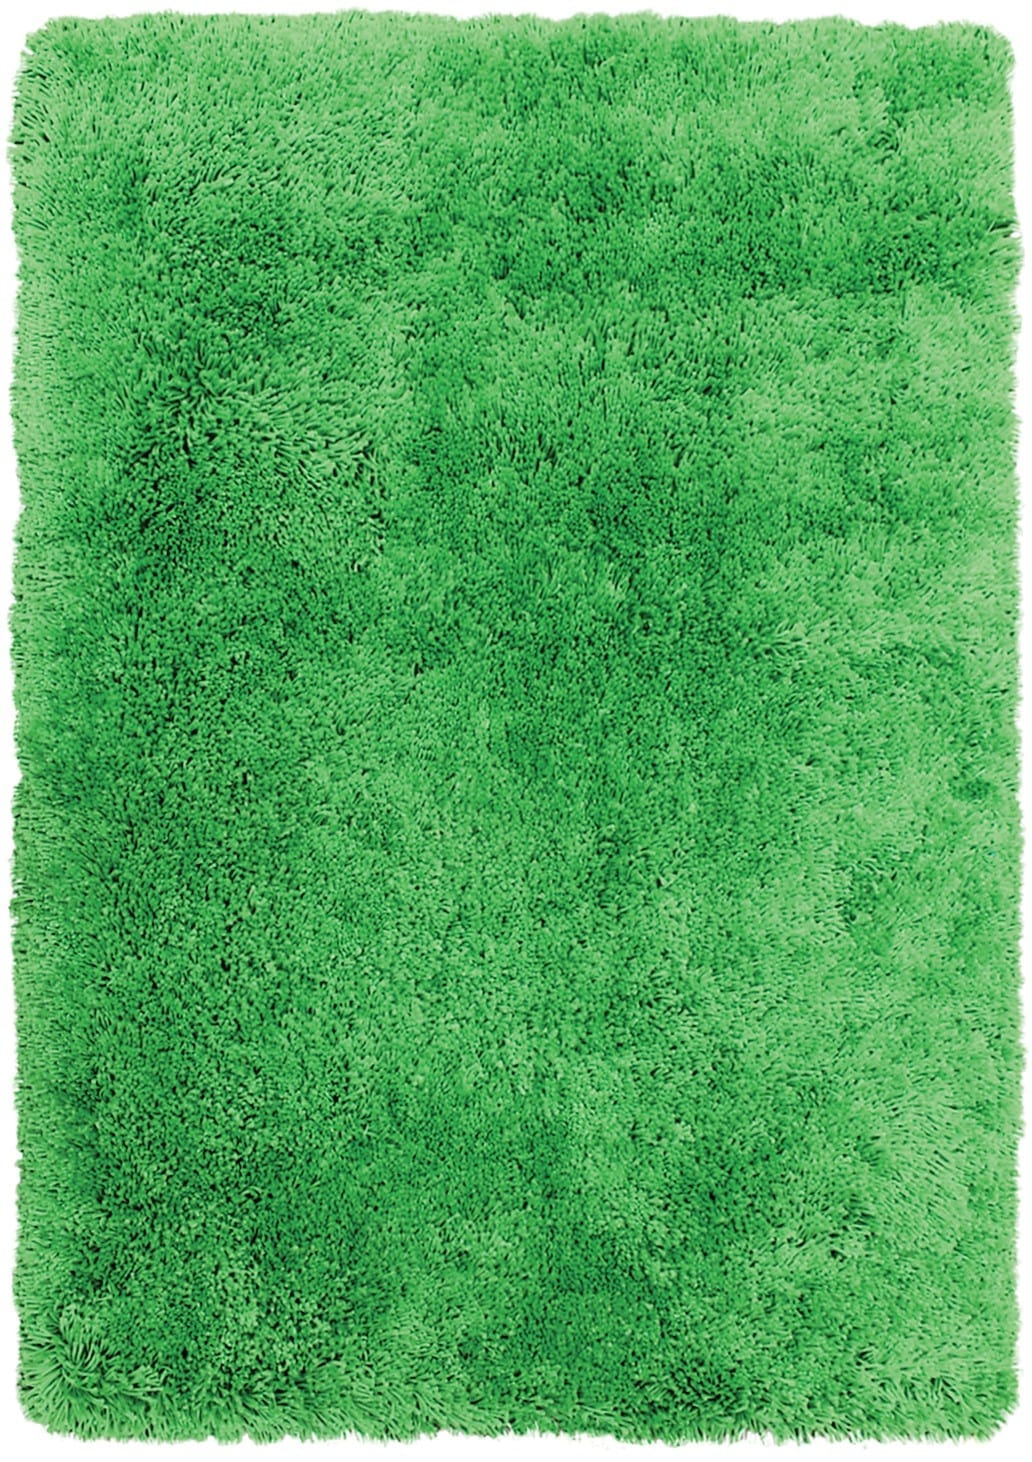 Rugs - Green Fashion Shag Area Rug – 4' x 5'